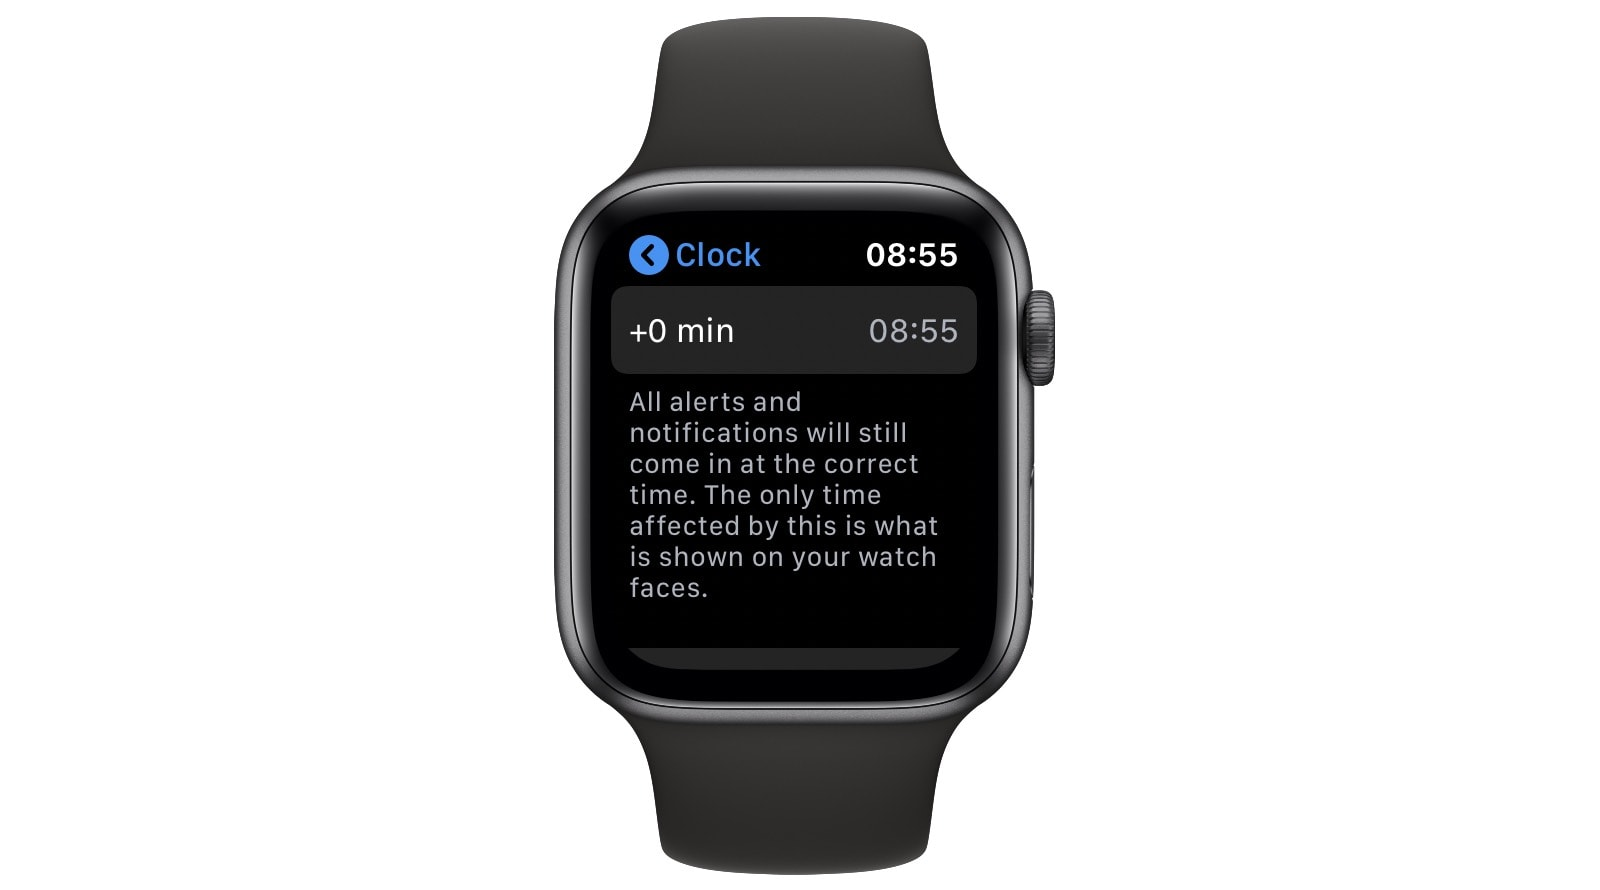 The Apple Watch's clock settings.